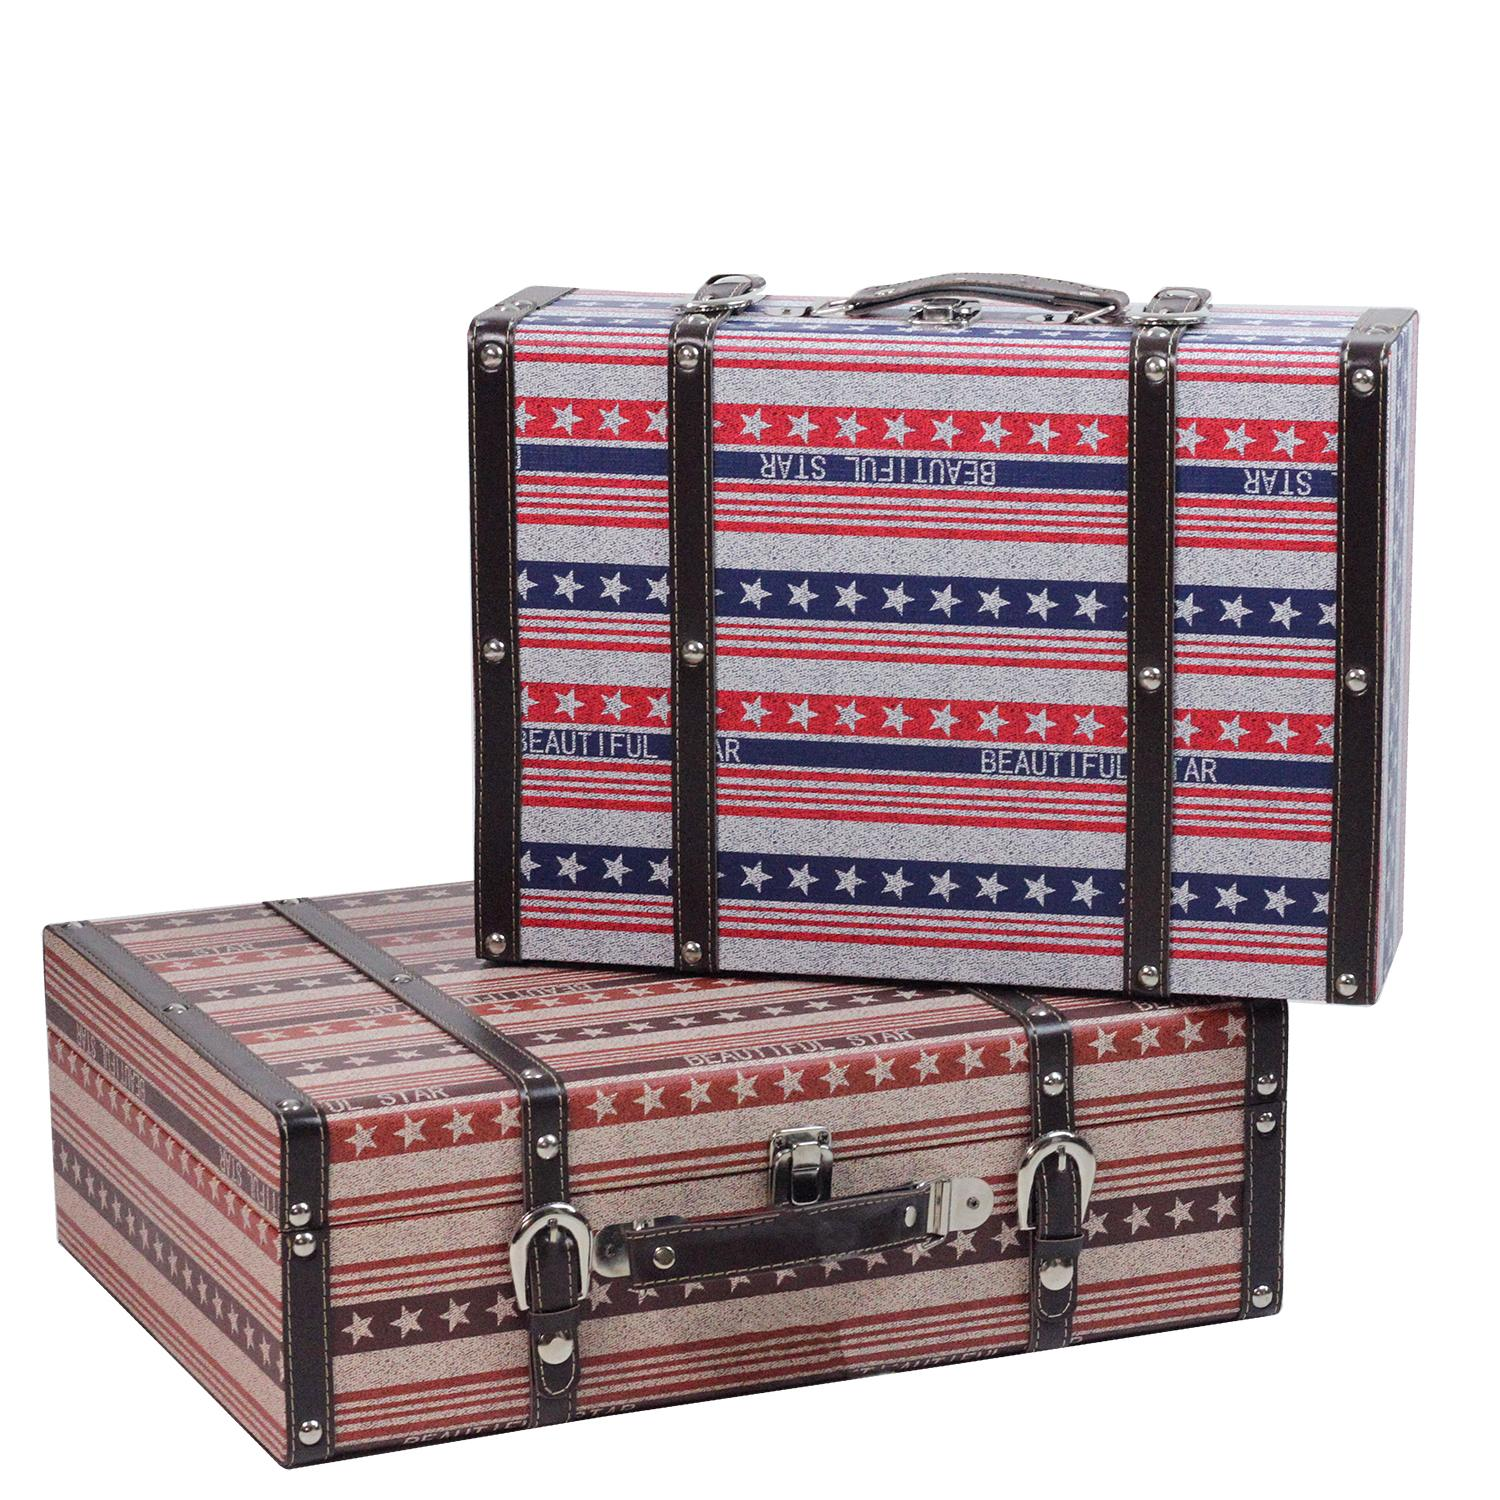 ''Set of 2 Vintage-Style Red  White and Blue Beautiful Star Decorative Wooden LUGGAGE Trunks 17.5''''''